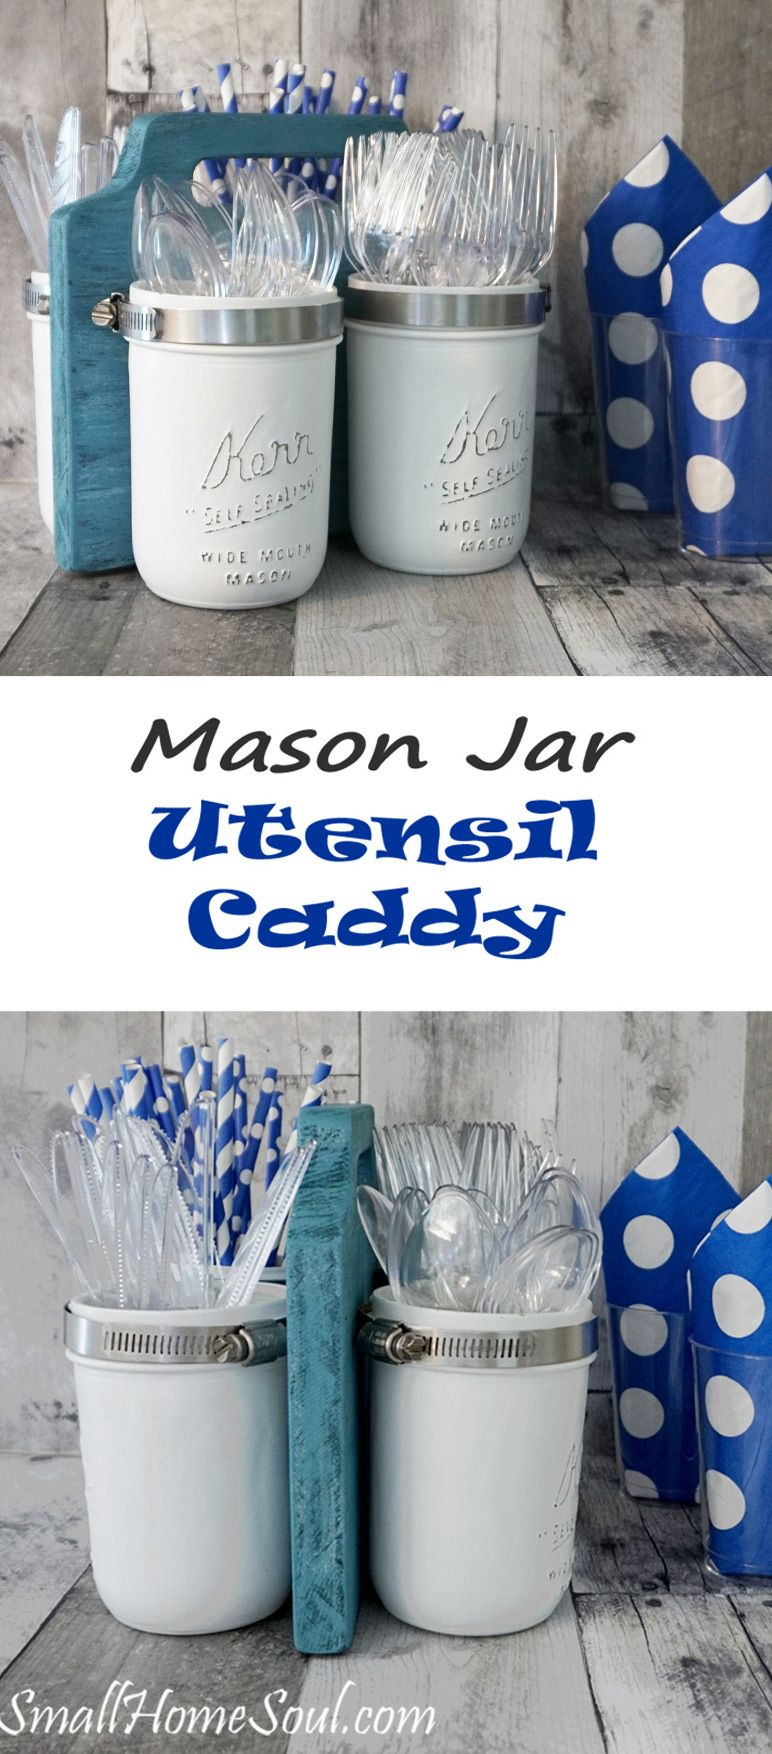 mason jar utensil caddy perfect for bbqs or parties